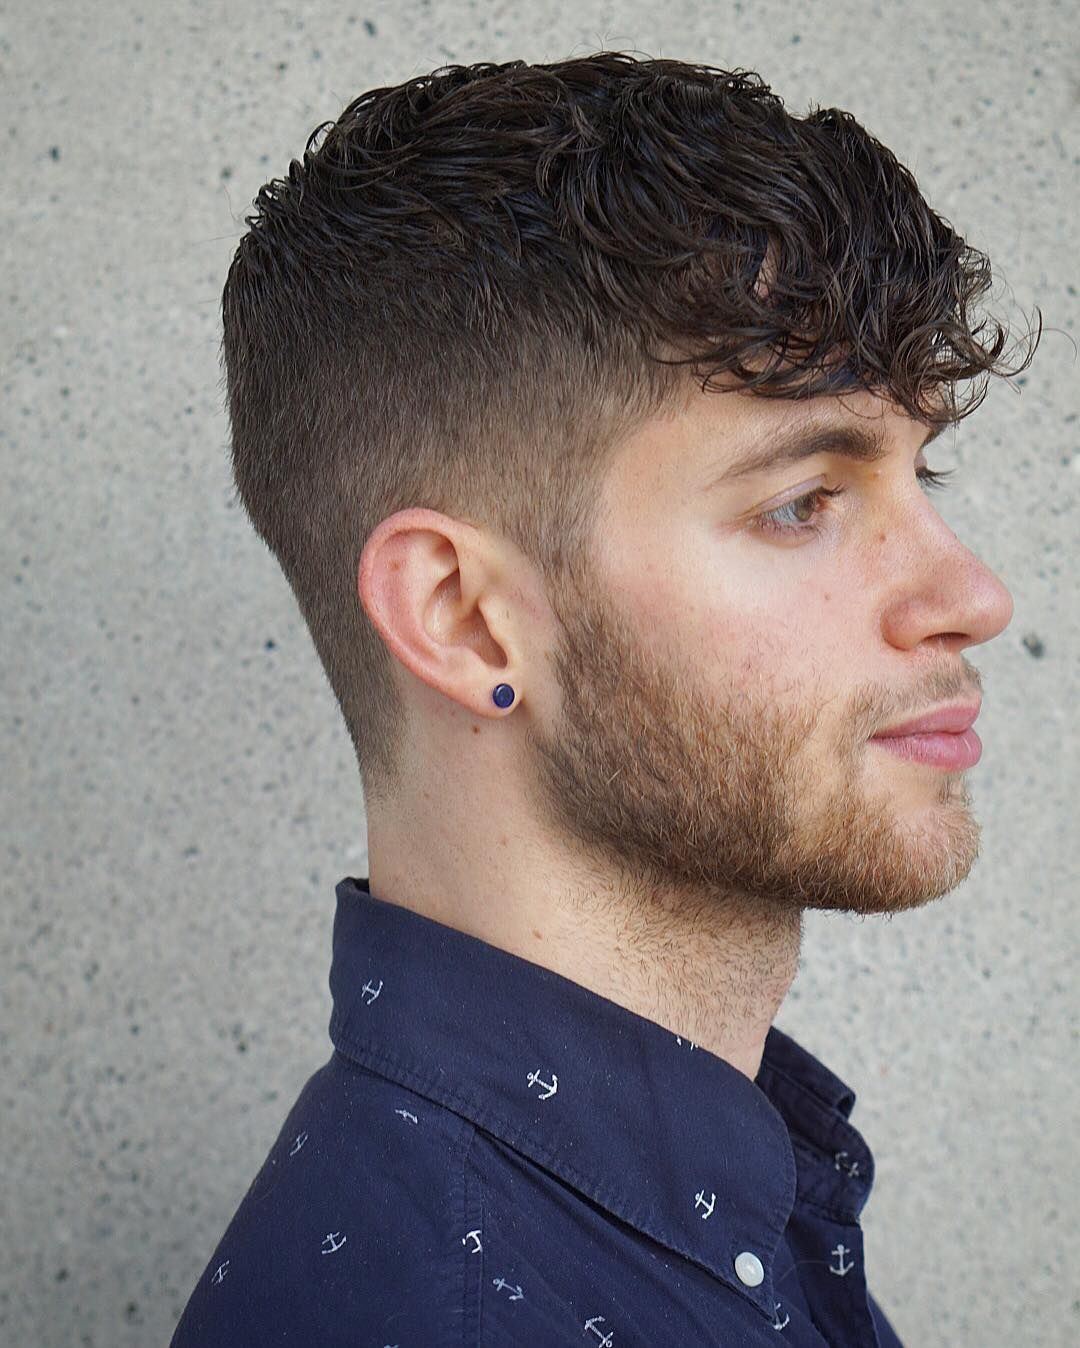 How to choose haircut men five best instabeards  haircuts man hair and men hair styles